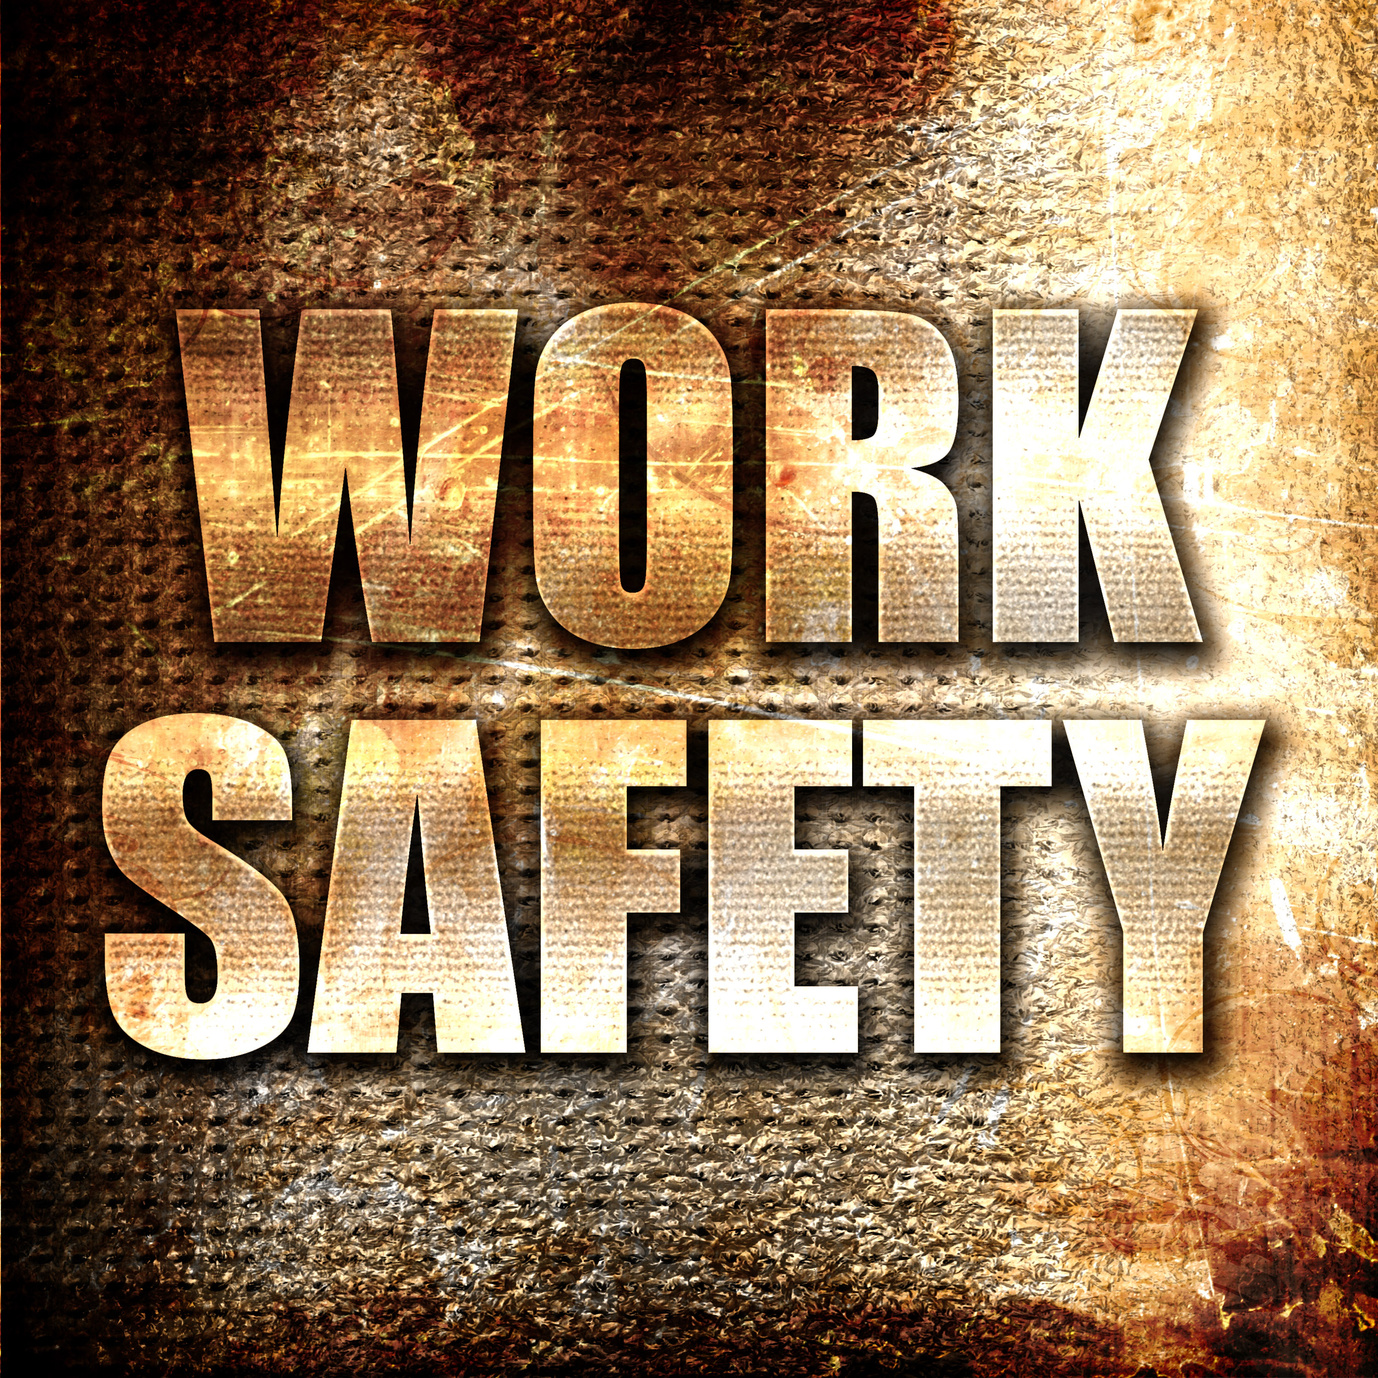 Grunge metal work safety